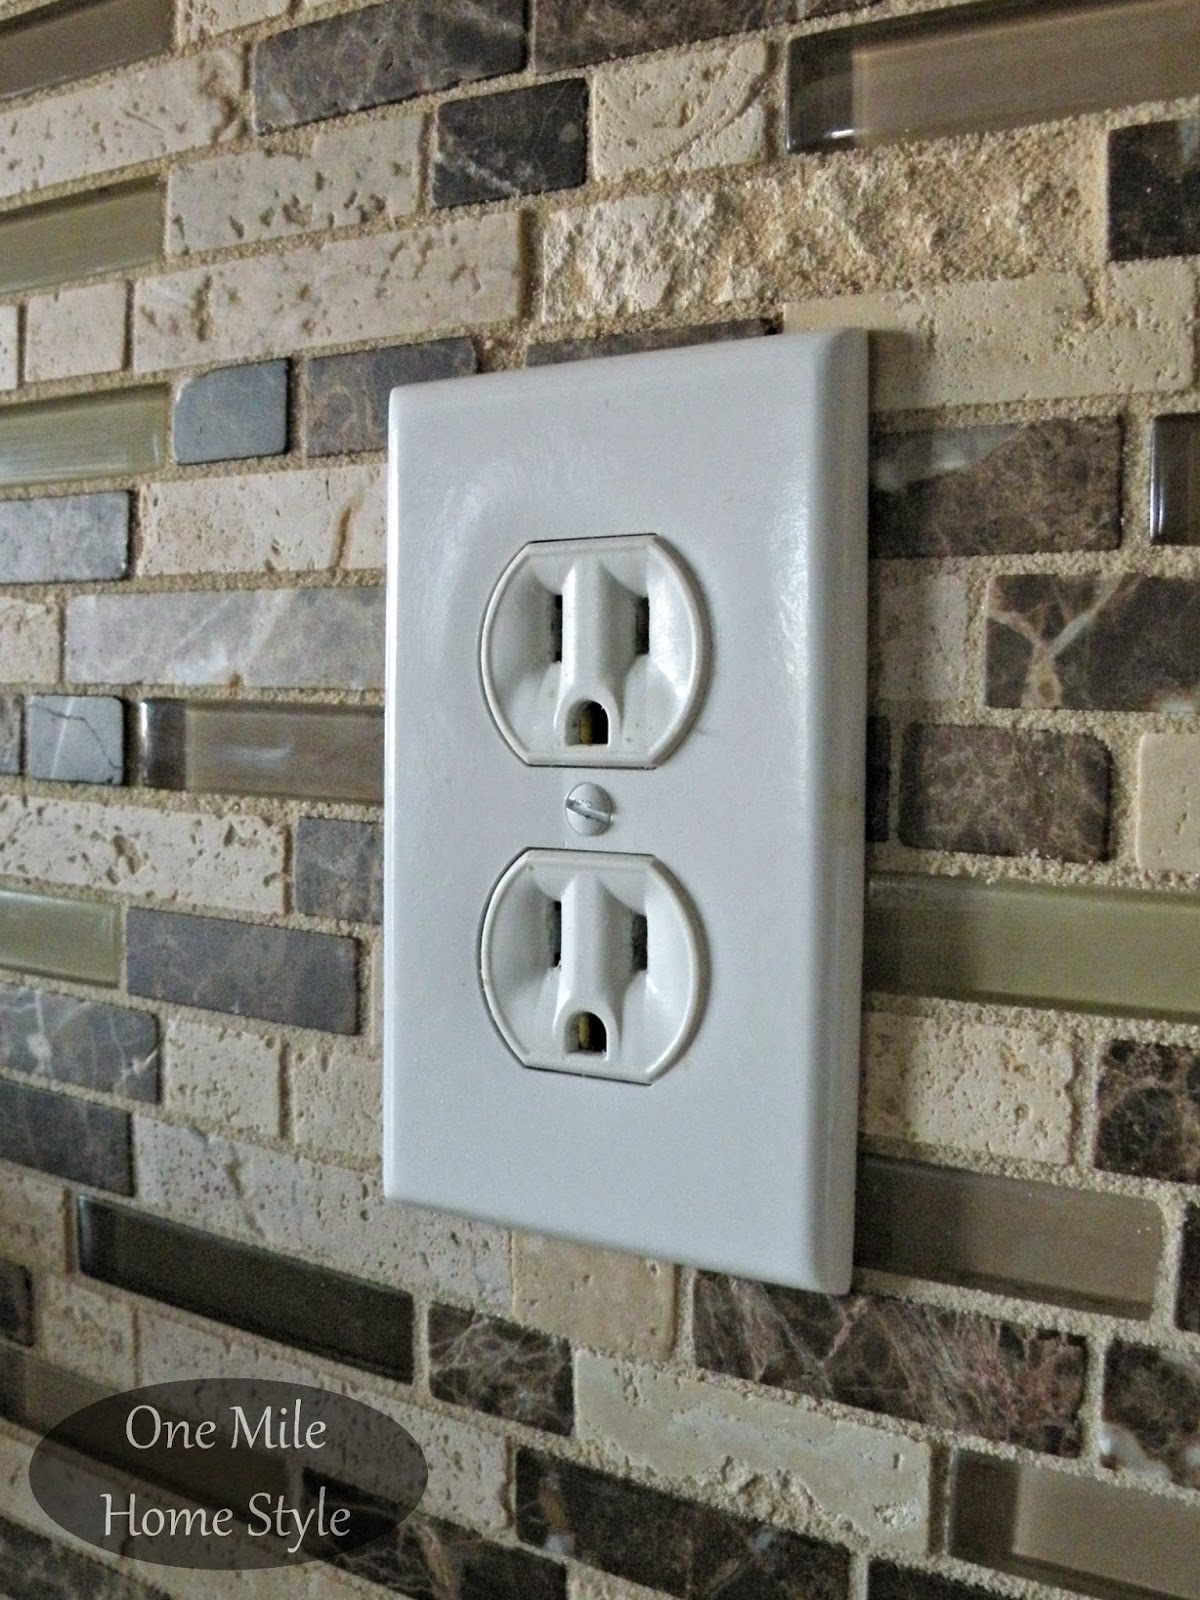 Adjusting Electrical Outlets After Tiling